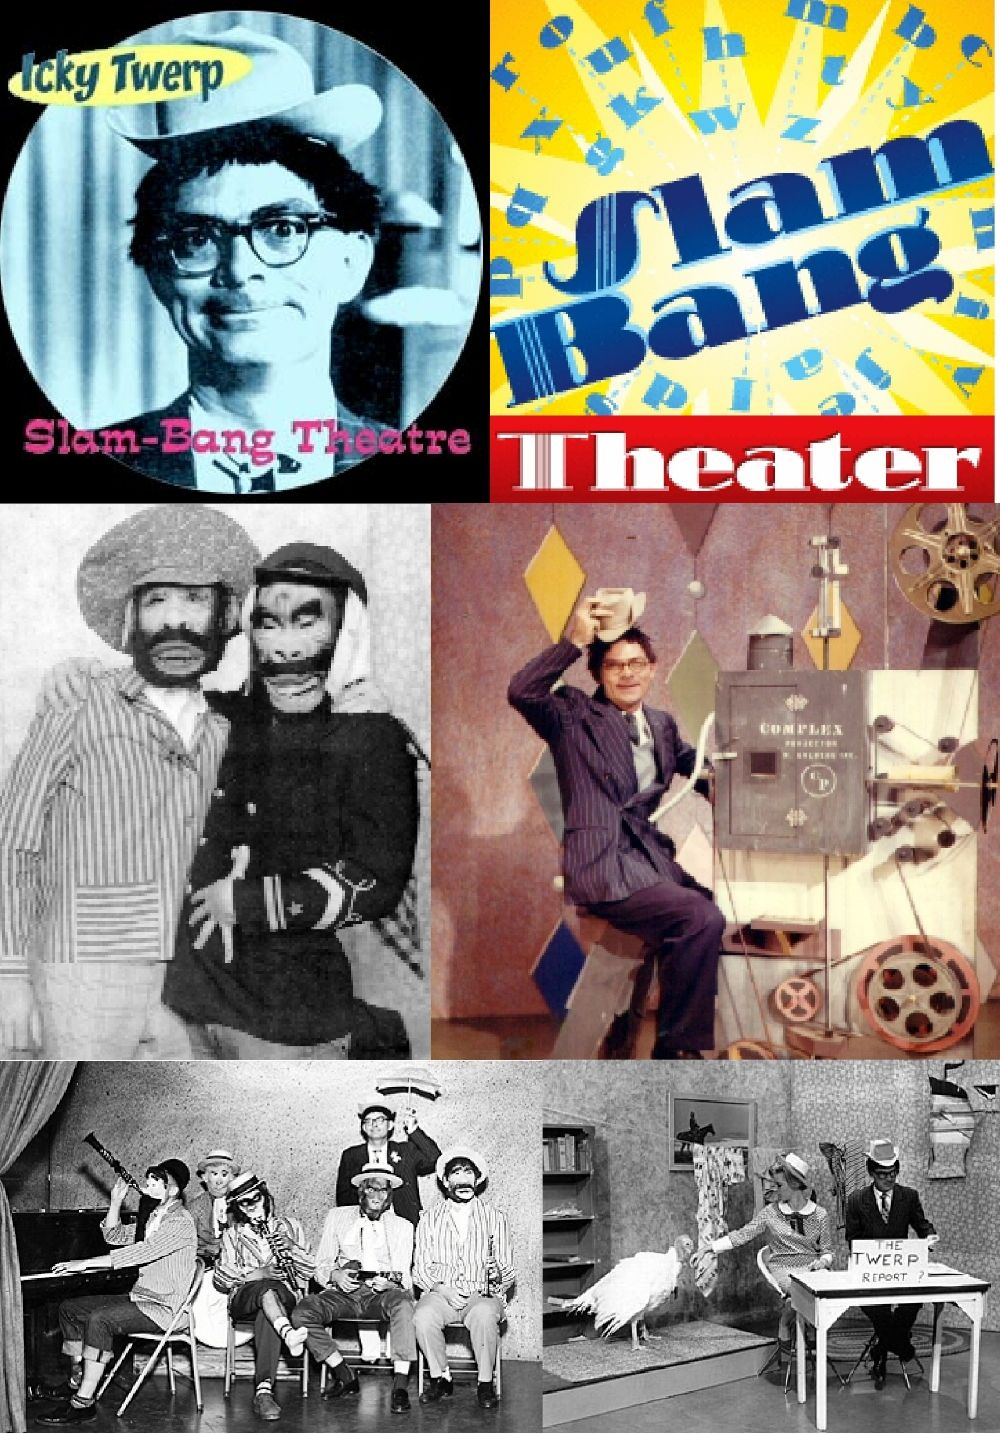 Icky Twerp and Slam Bang Theater.  A staple of growing up in The Dallas/ Fort Worth area in the 60's!!! This was a morning show before school!